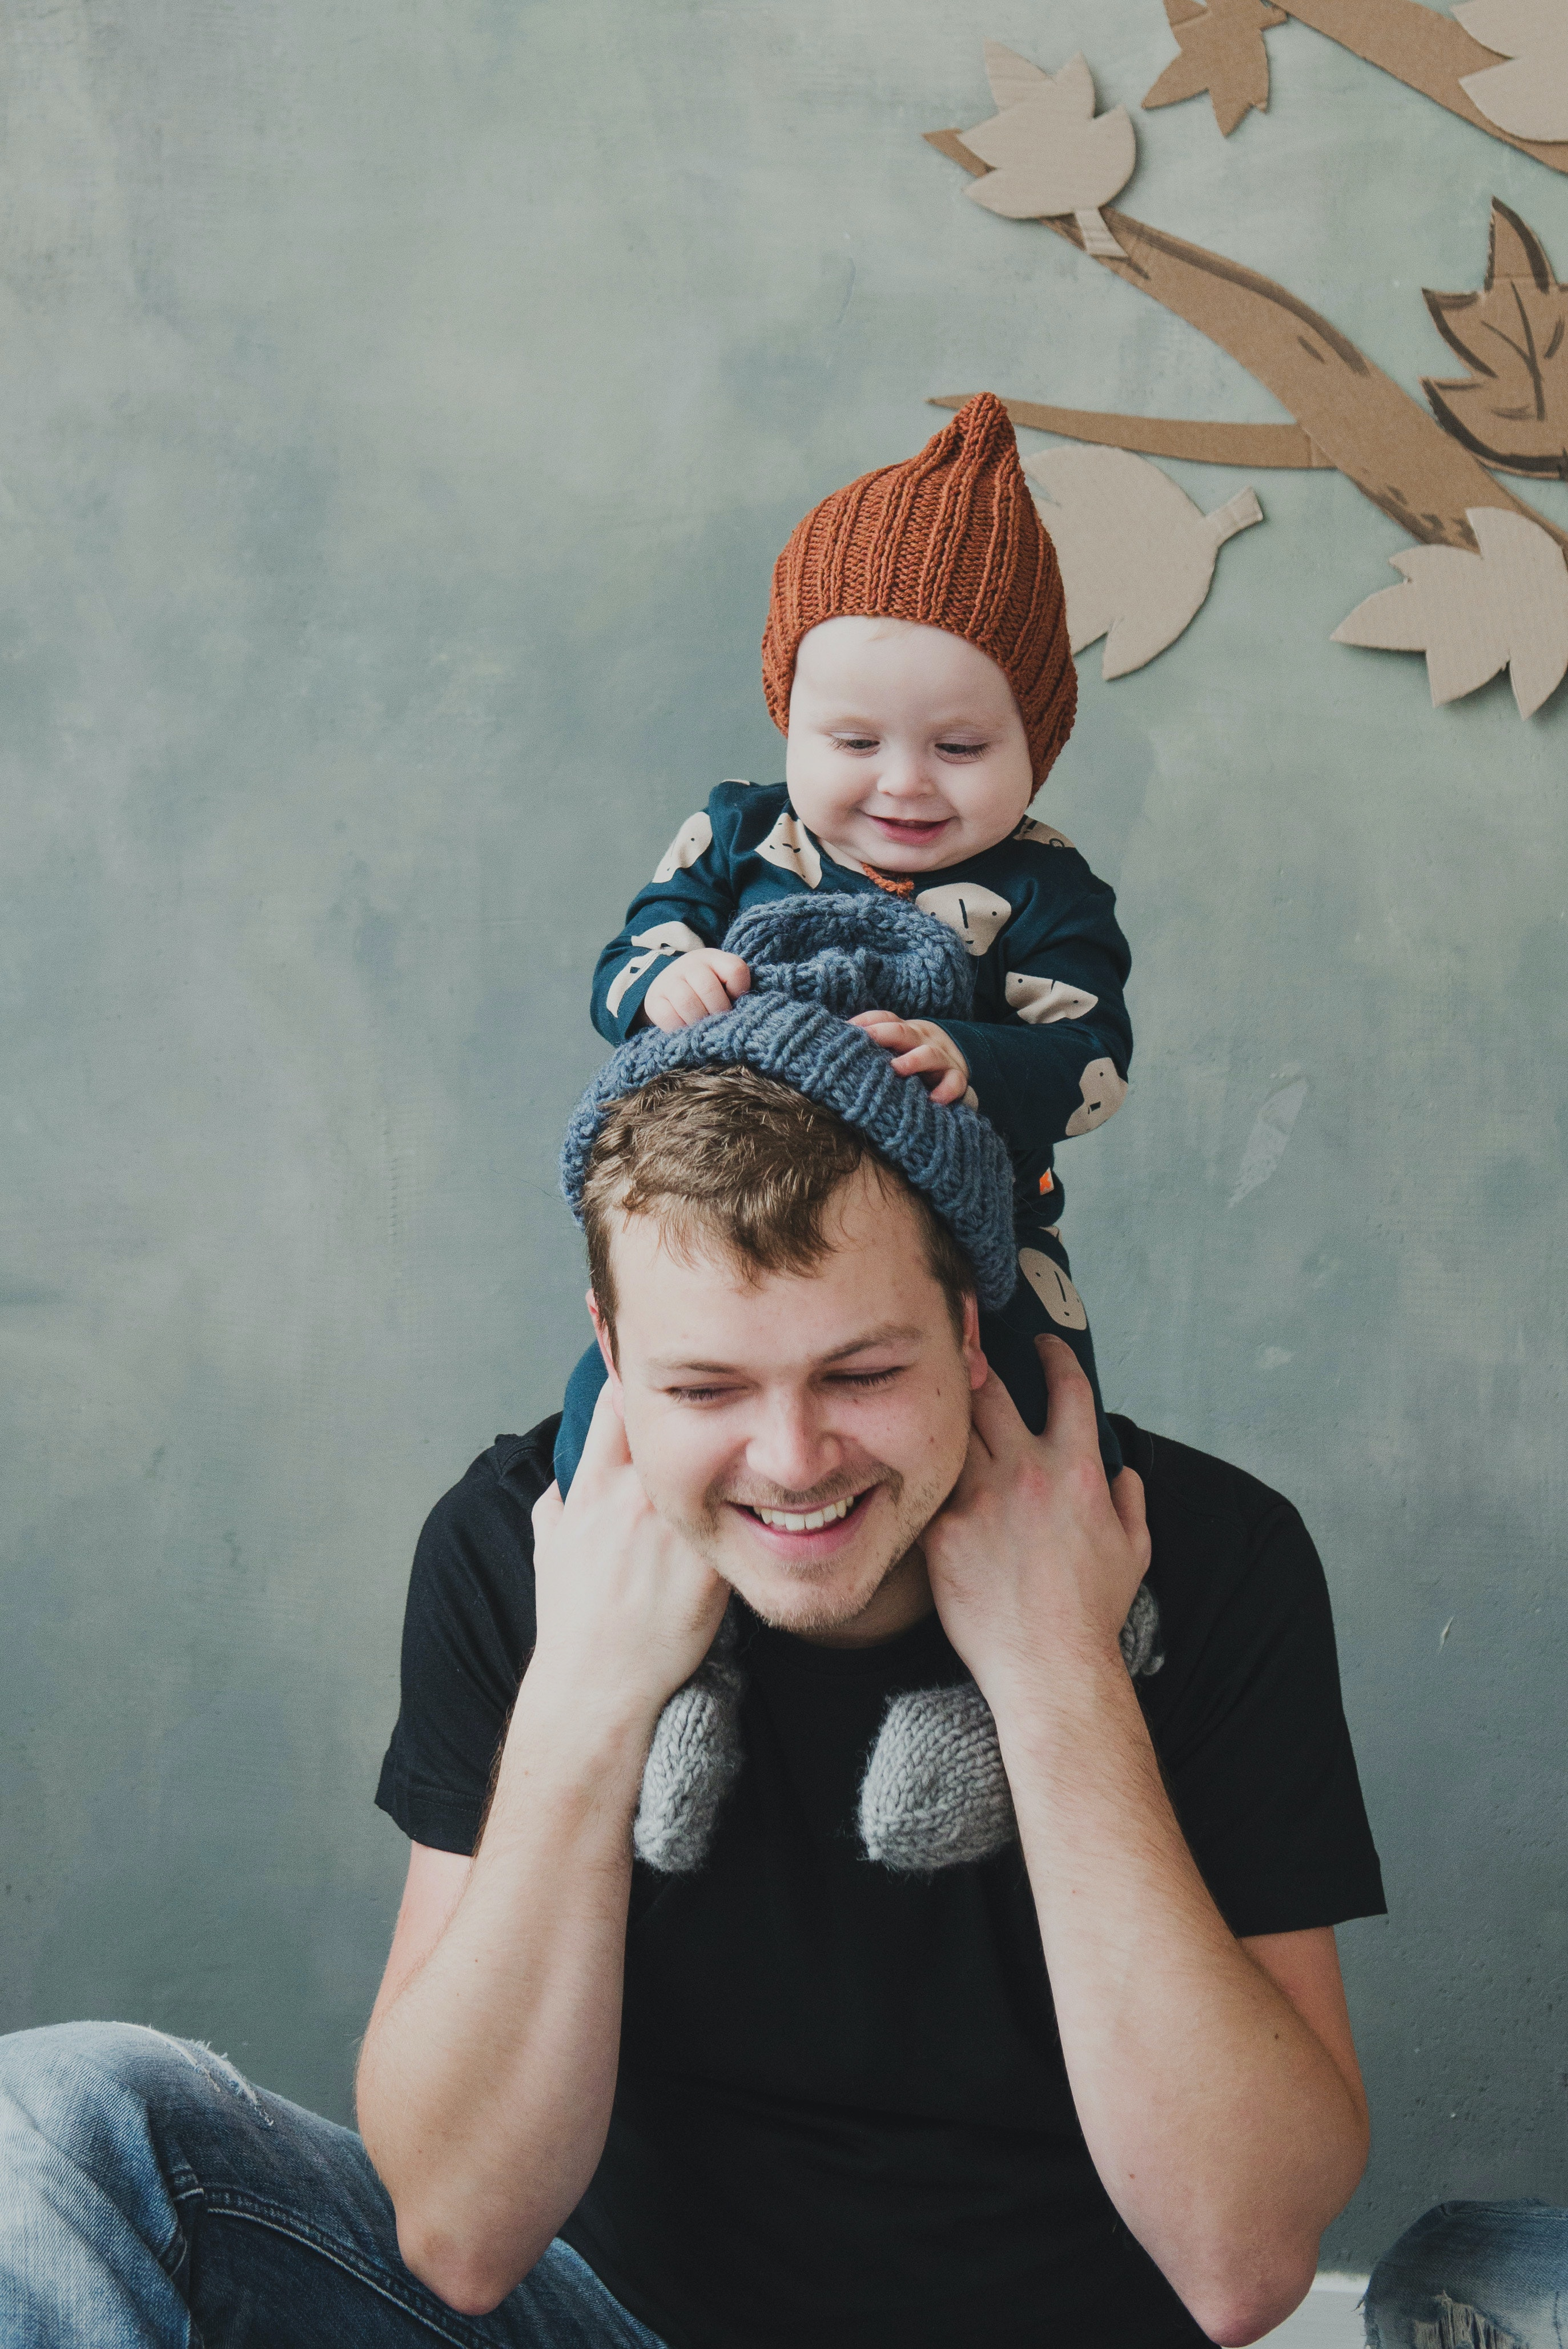 A man with his baby son on his shoulders